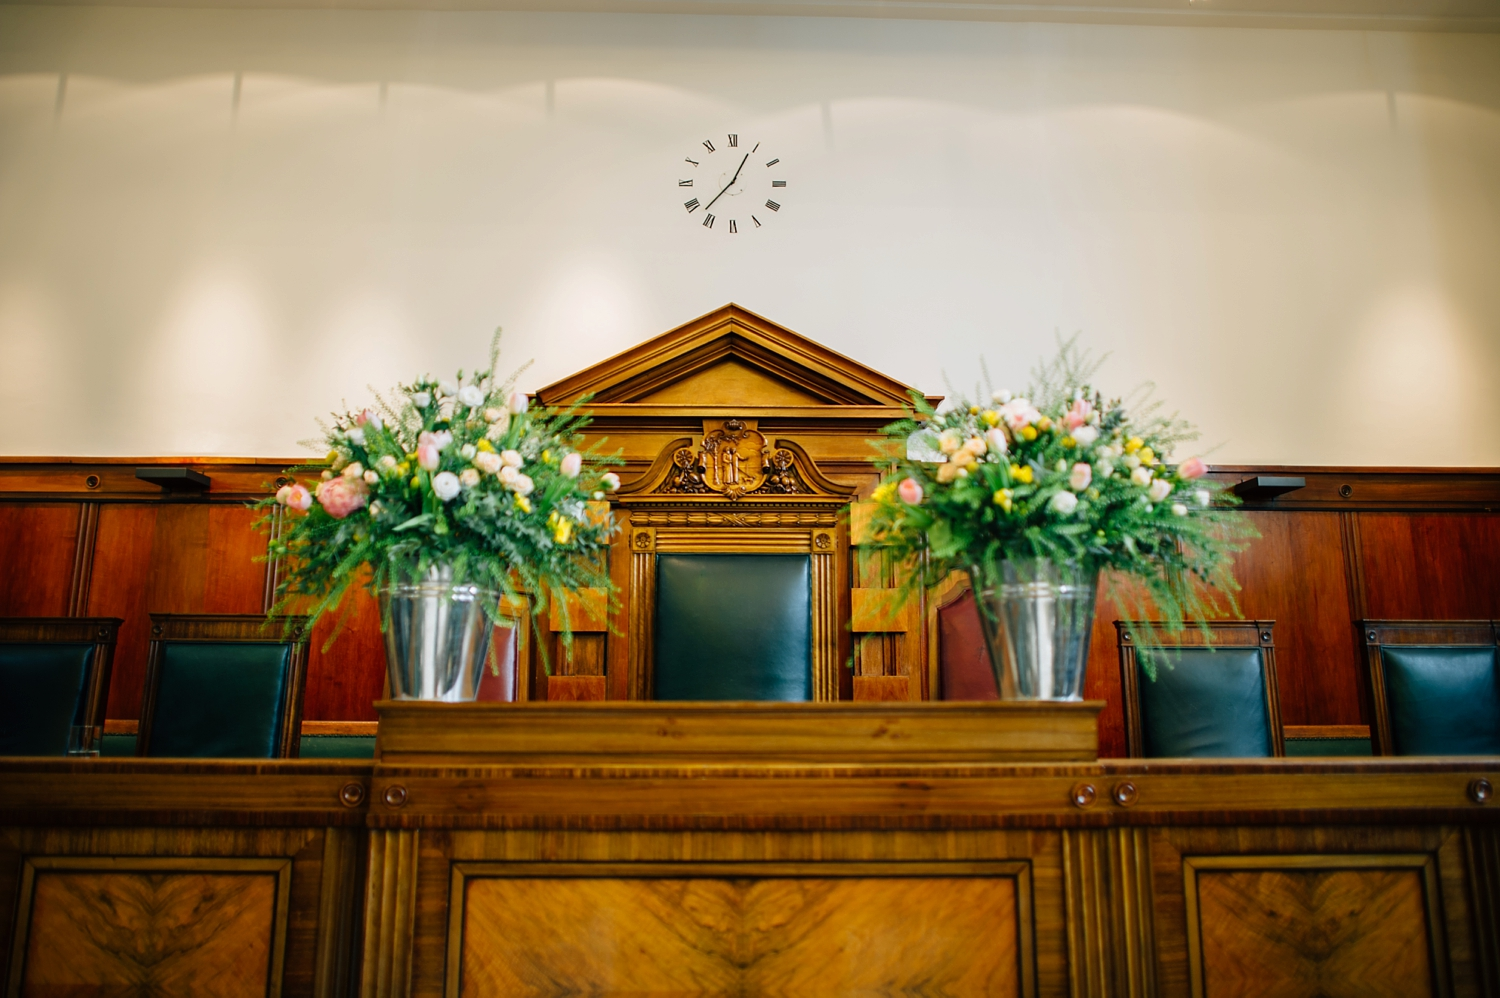 0030-lisa-devine-alternative-wedding-photography-london-hackney-dalston-london-photography-townhall-hotel.JPG